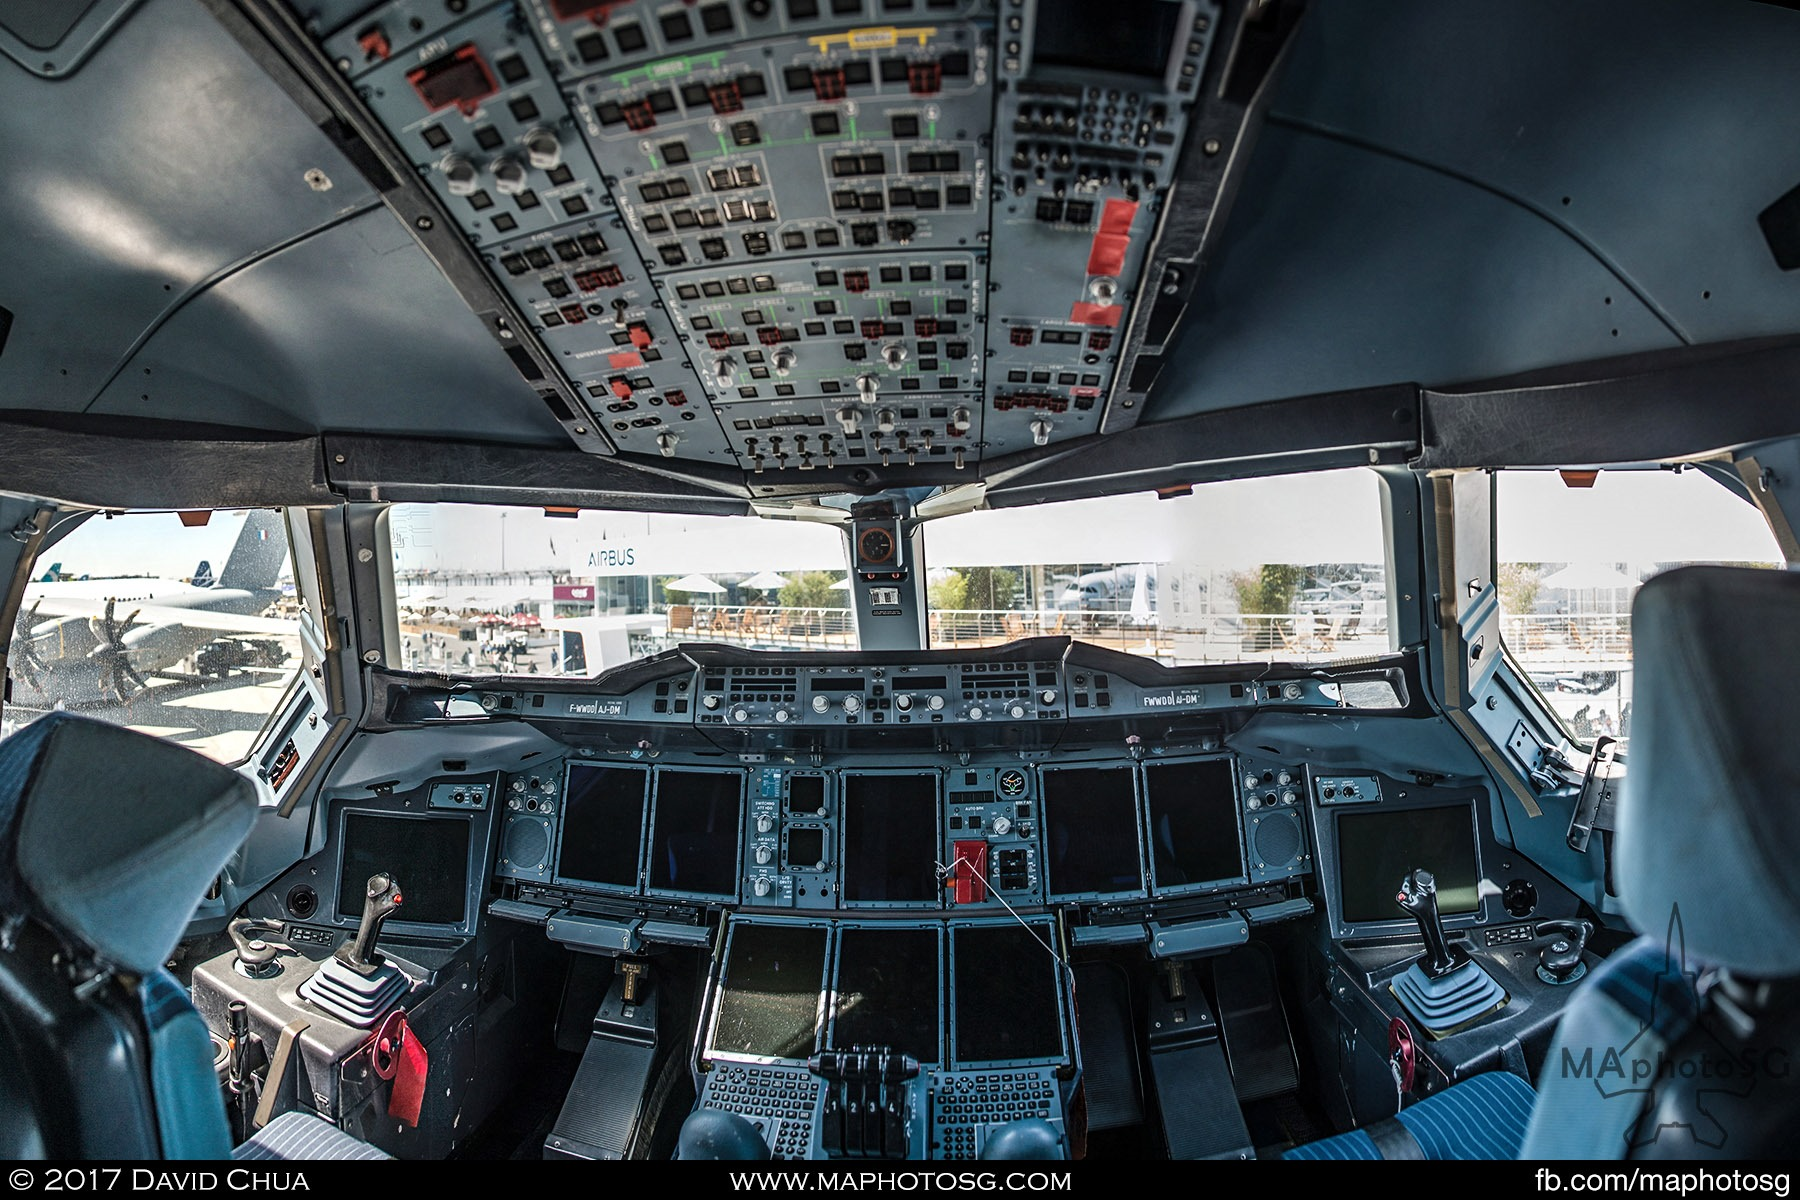 2. Cockpit of the Airbus A380plus.